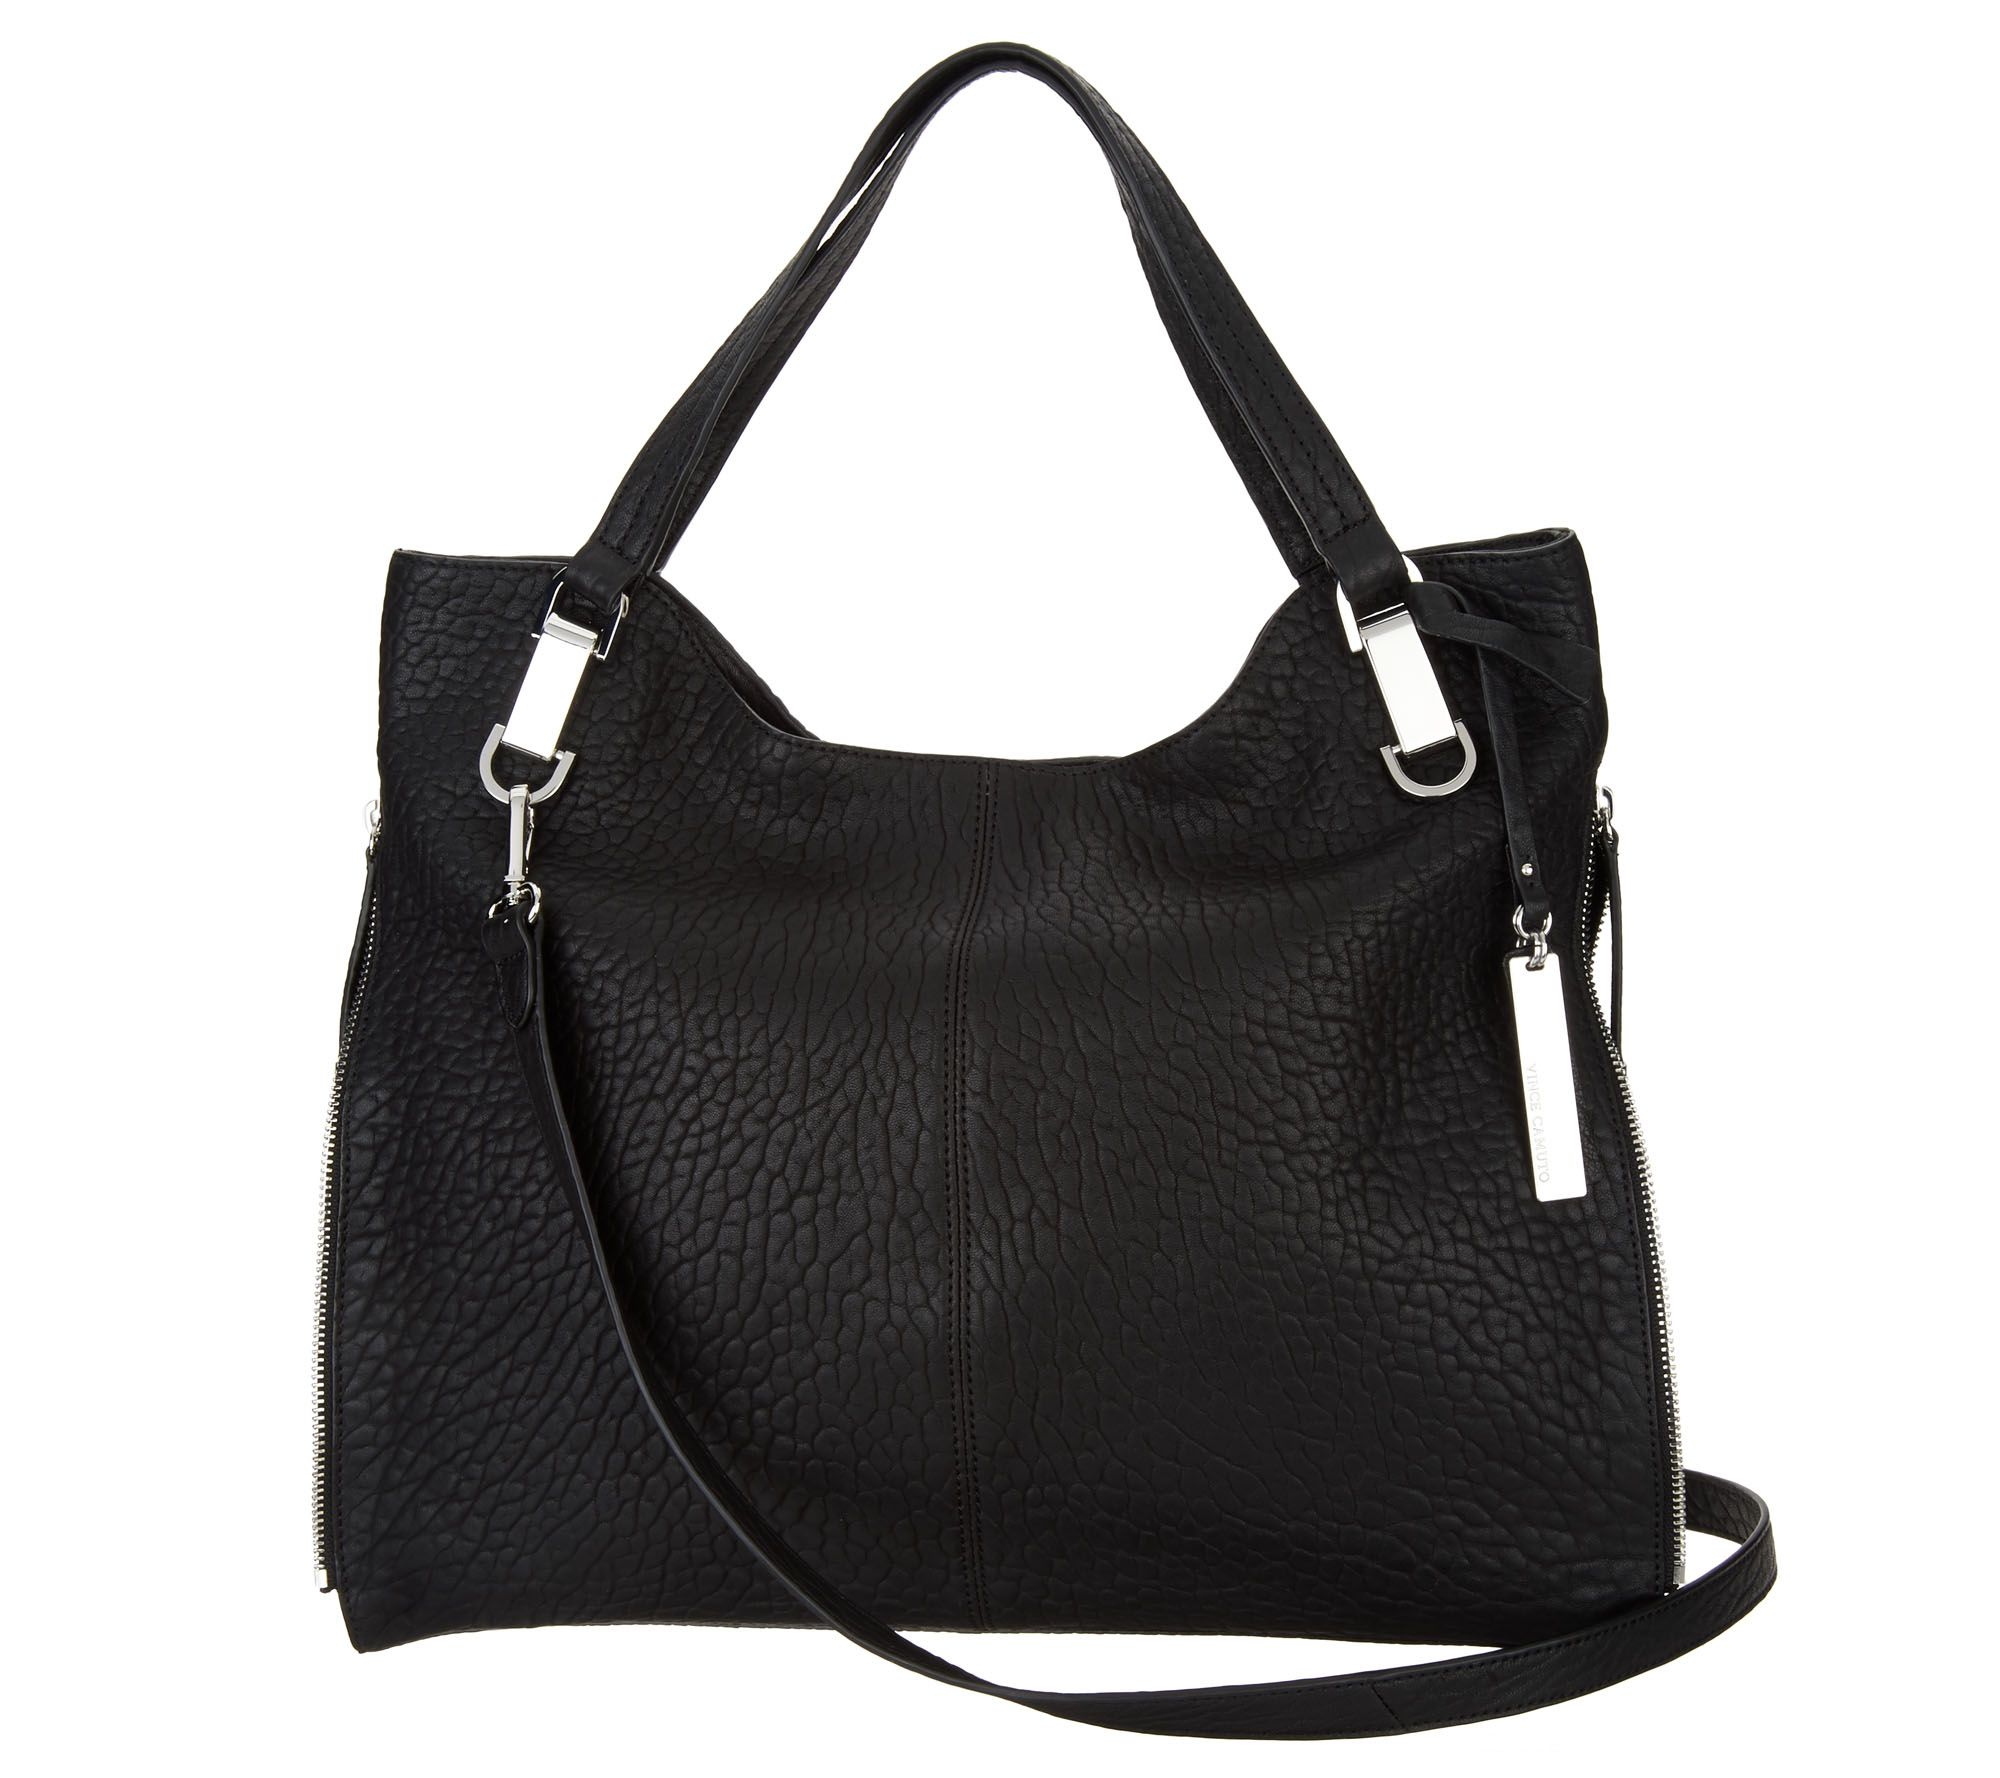 dc17162d8e9e Vince Camuto Leather Tote Handbag - Riley - Page 1 — QVC.com